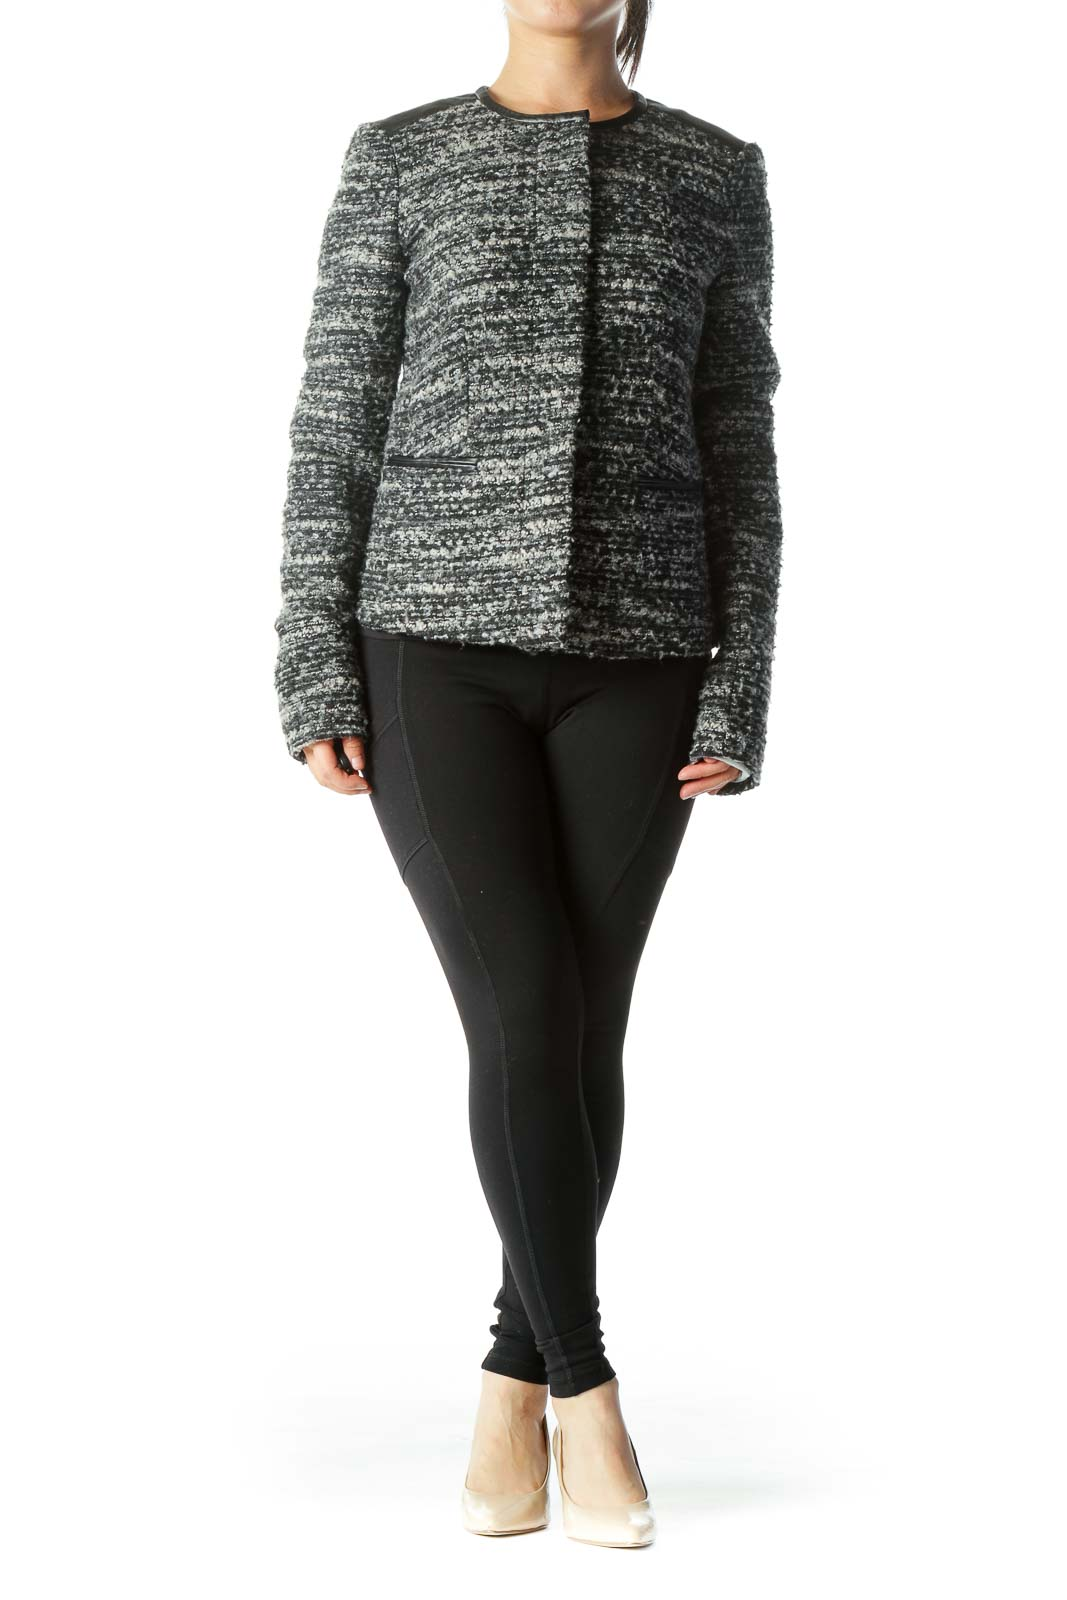 Black Gray Round-Neck Hidden Buttons Long-Sleeve Knit Jacket